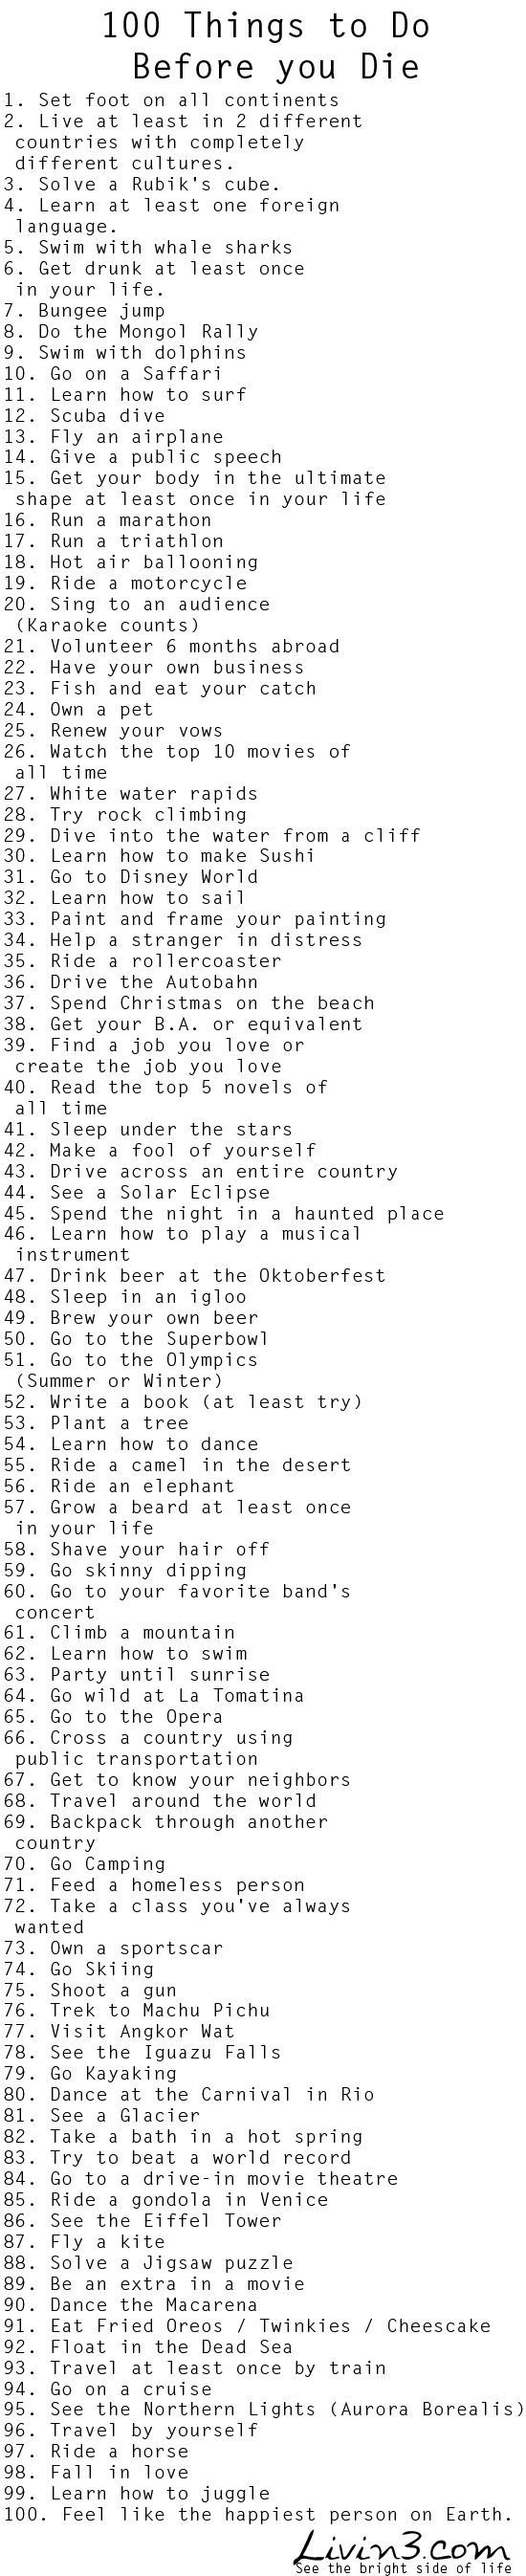 17 best ideas about life goals list bucket lists 100 things to do before i die bucket list live your life ya